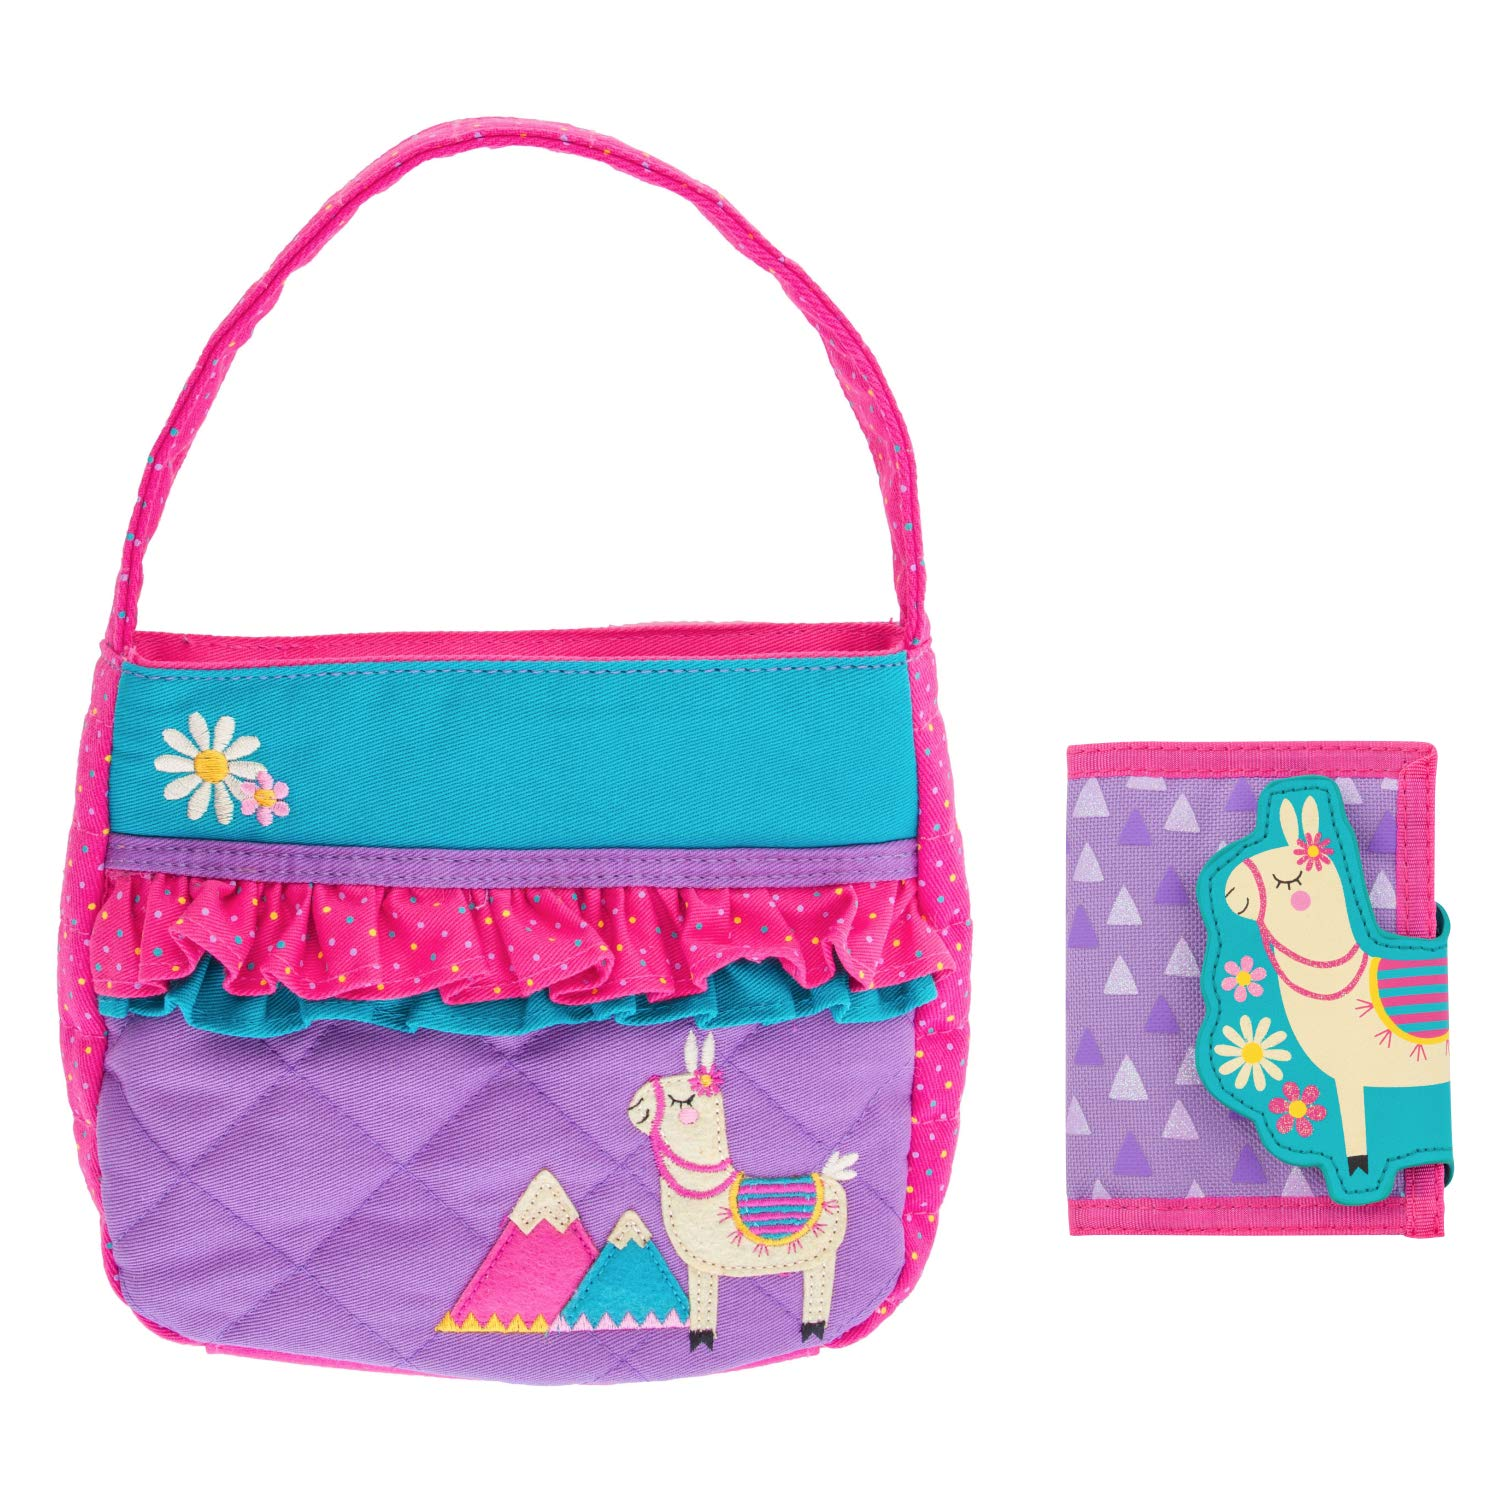 Stephen Joseph Kids Quilted Llama Purse and Wallet for Girls